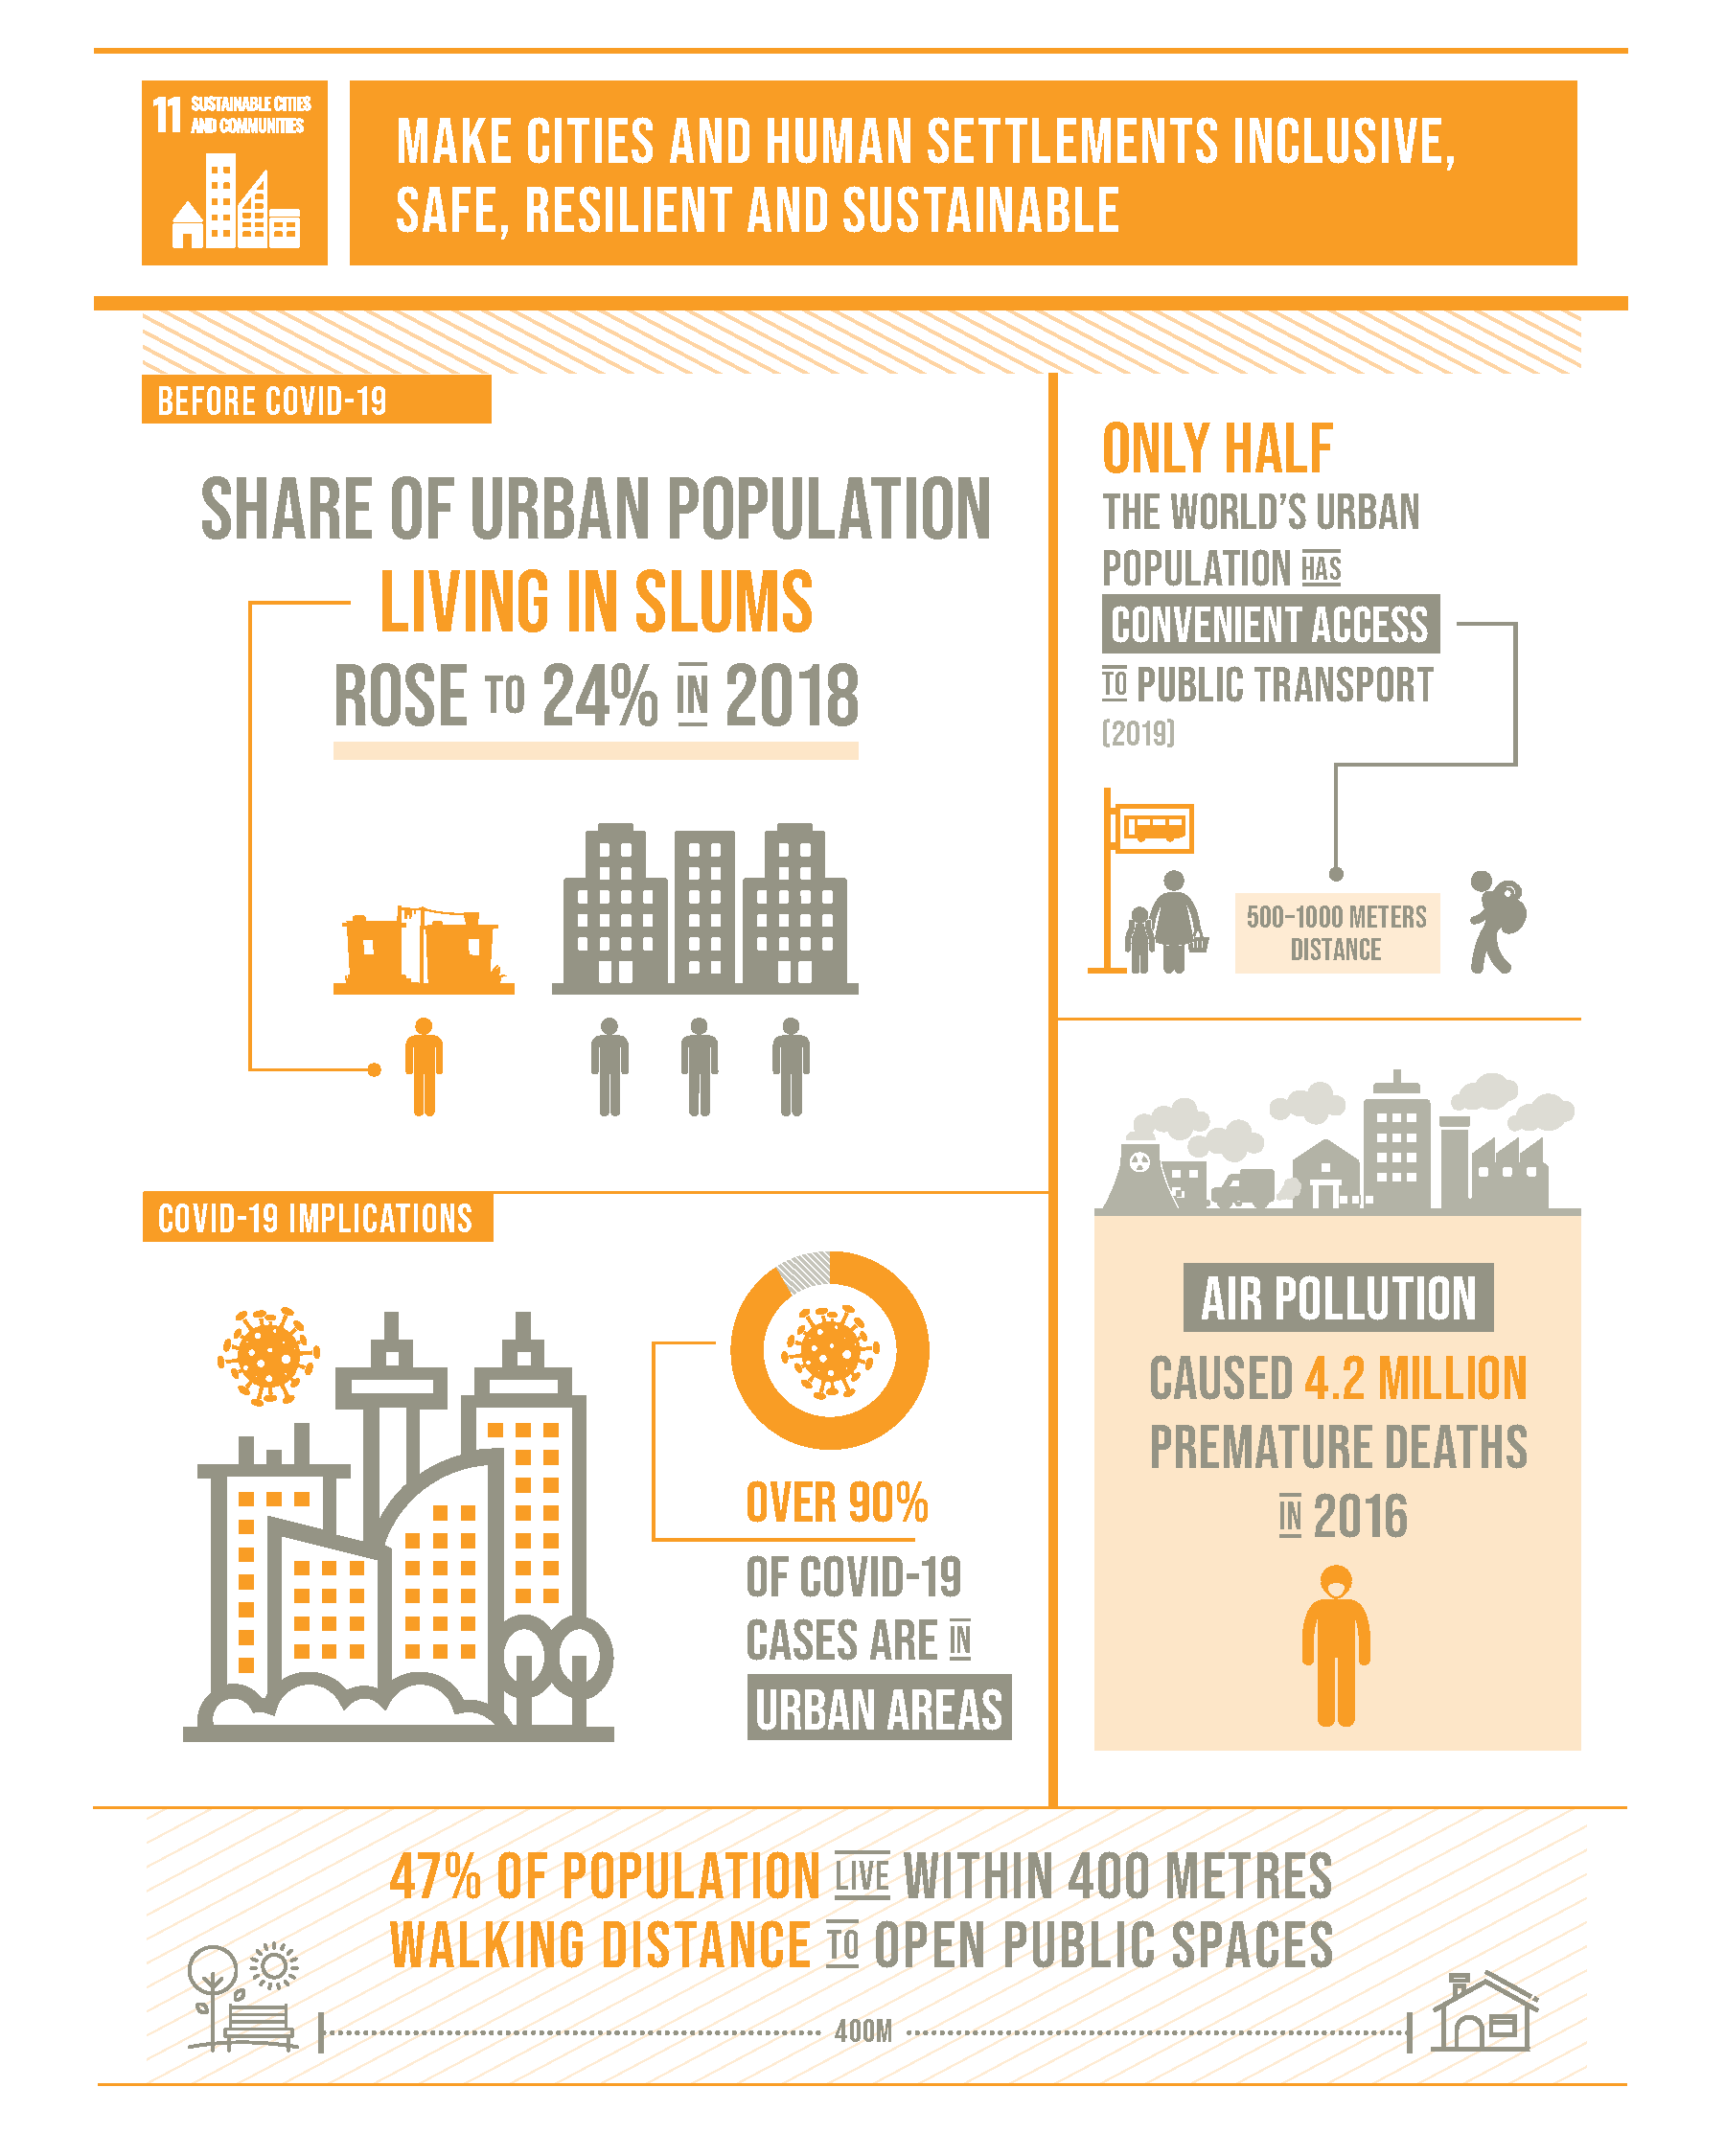 Goal 11 infographic, source: https://unstats.un.org/sdgs/report/2020/The-Sustainable-Development-Goals-Report-2020.pdf